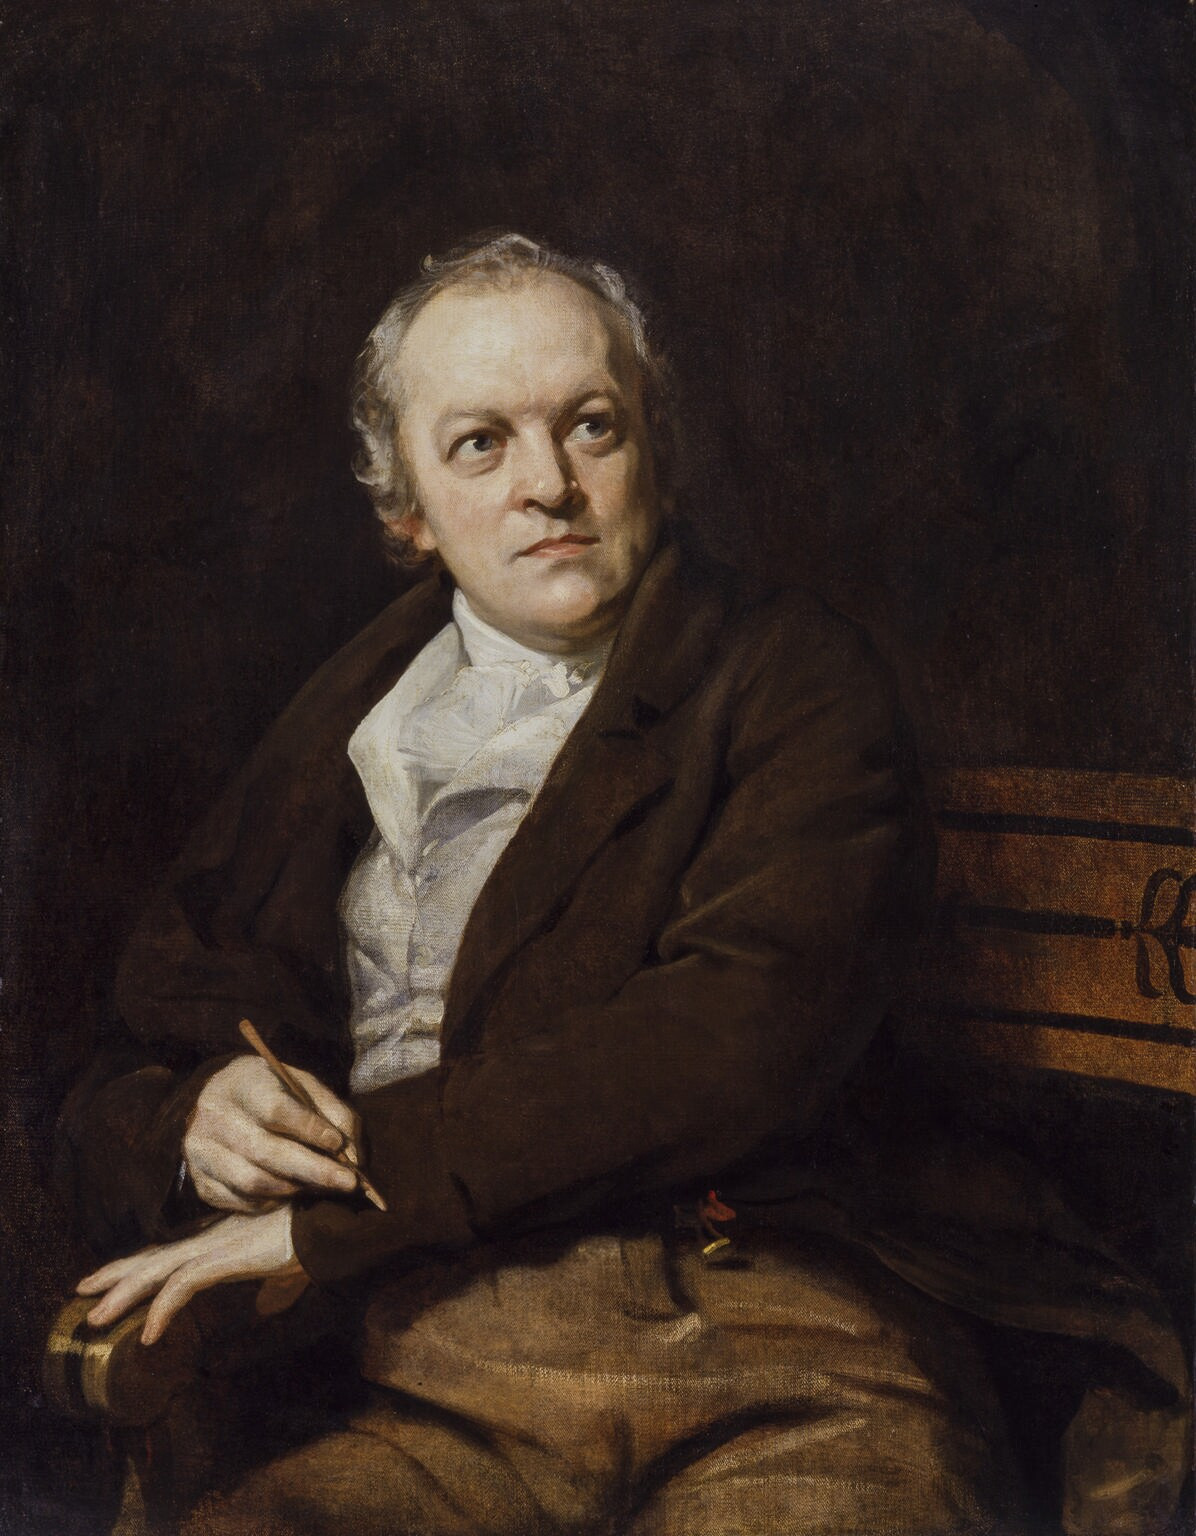 http://upload.wikimedia.org/wikipedia/commons/0/00/William_Blake_by_Thomas_Phillips.jpg